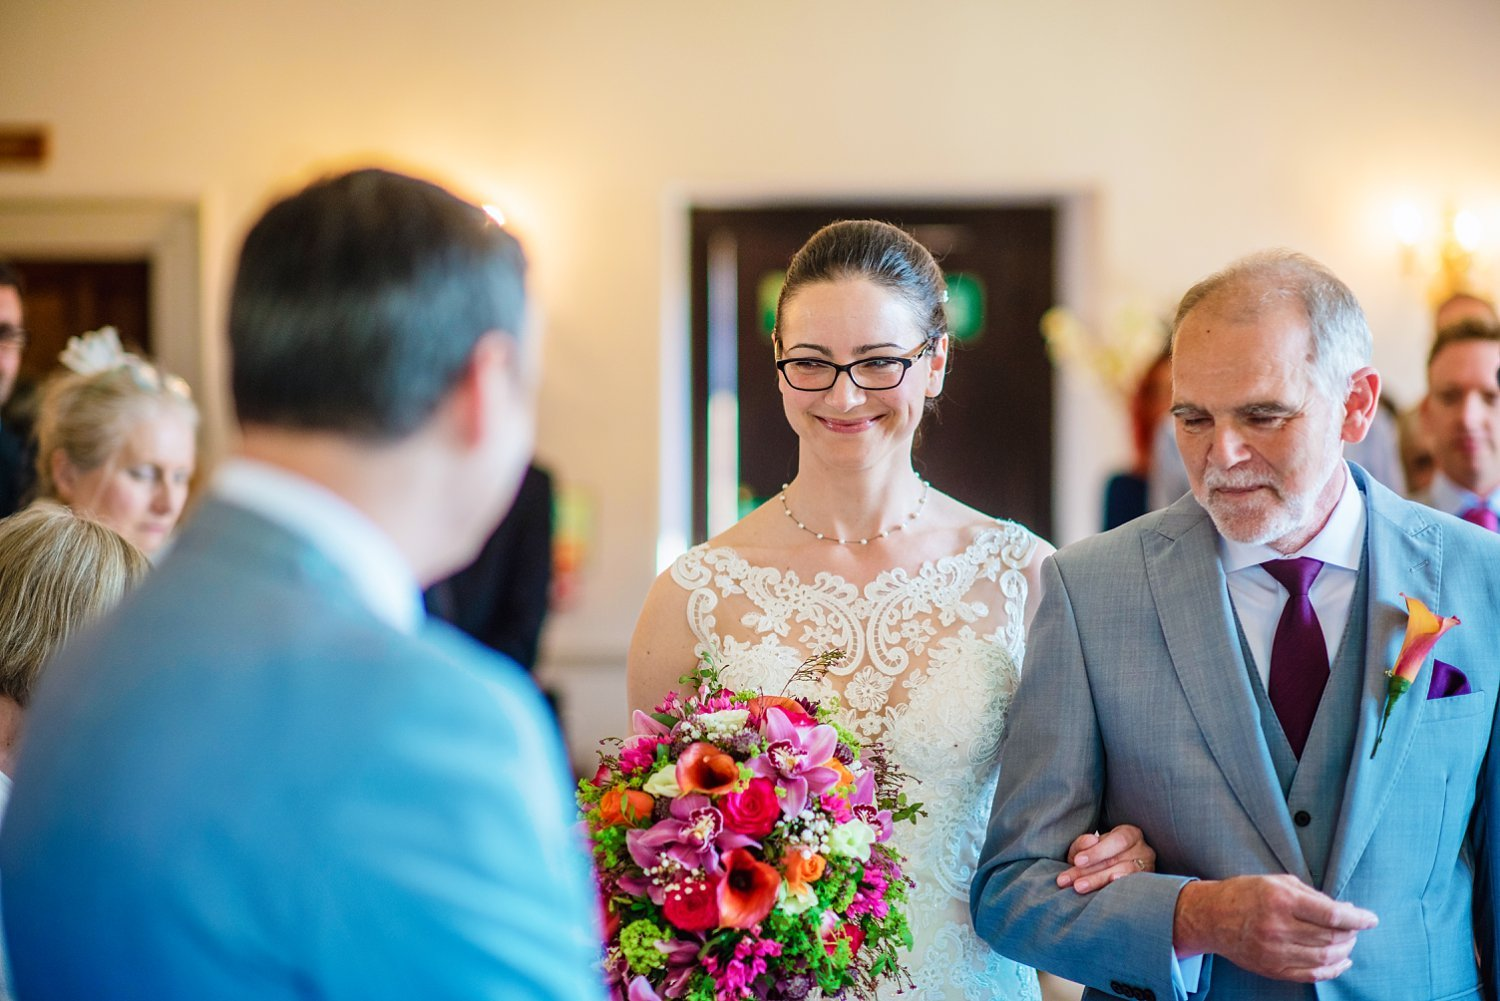 New Place Hotel Wedding - bride smiling at her husband to be as she is walking down the aisle